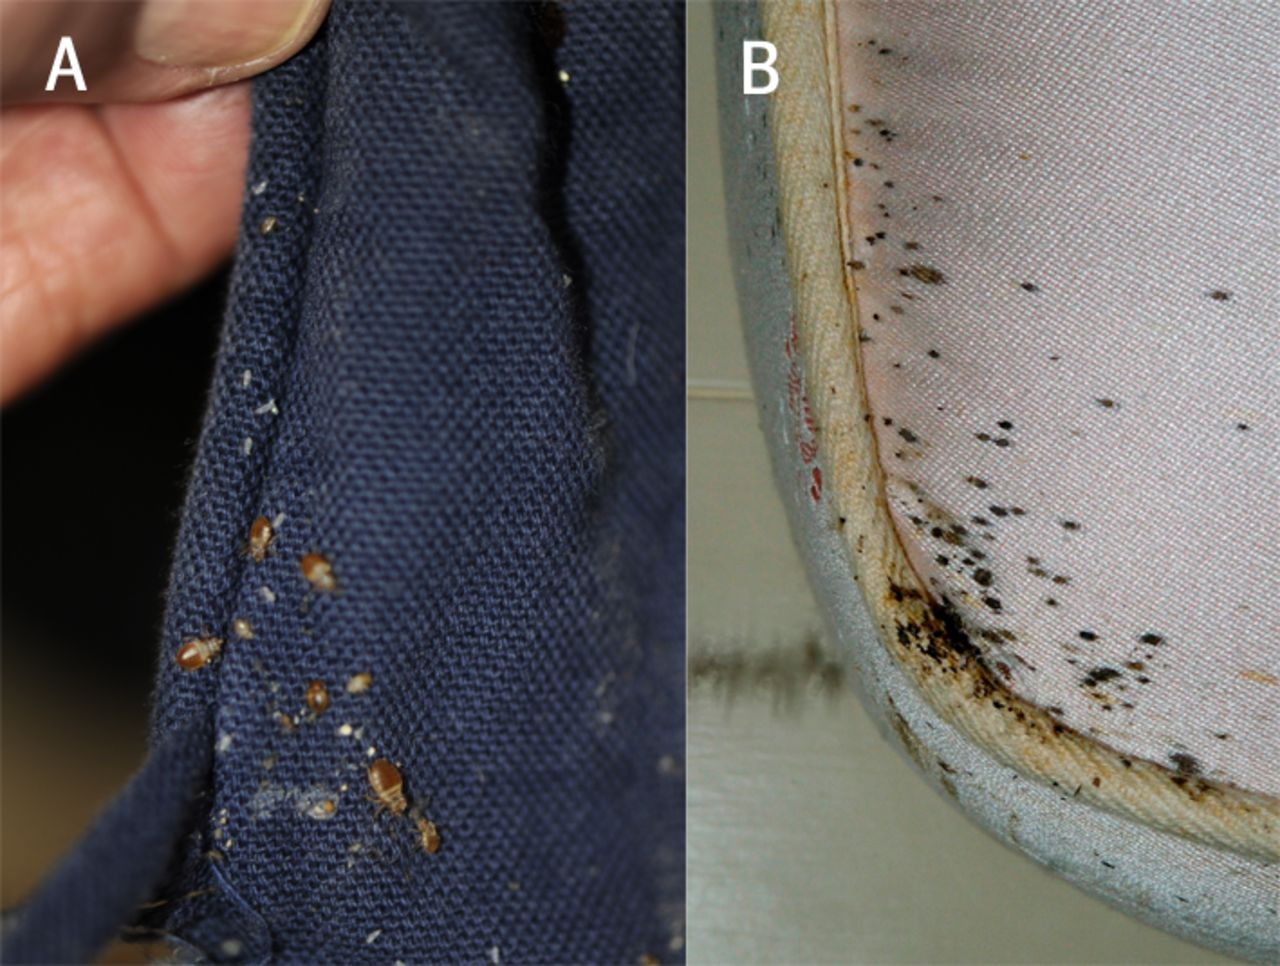 Bed Bug Removal From Suitcases